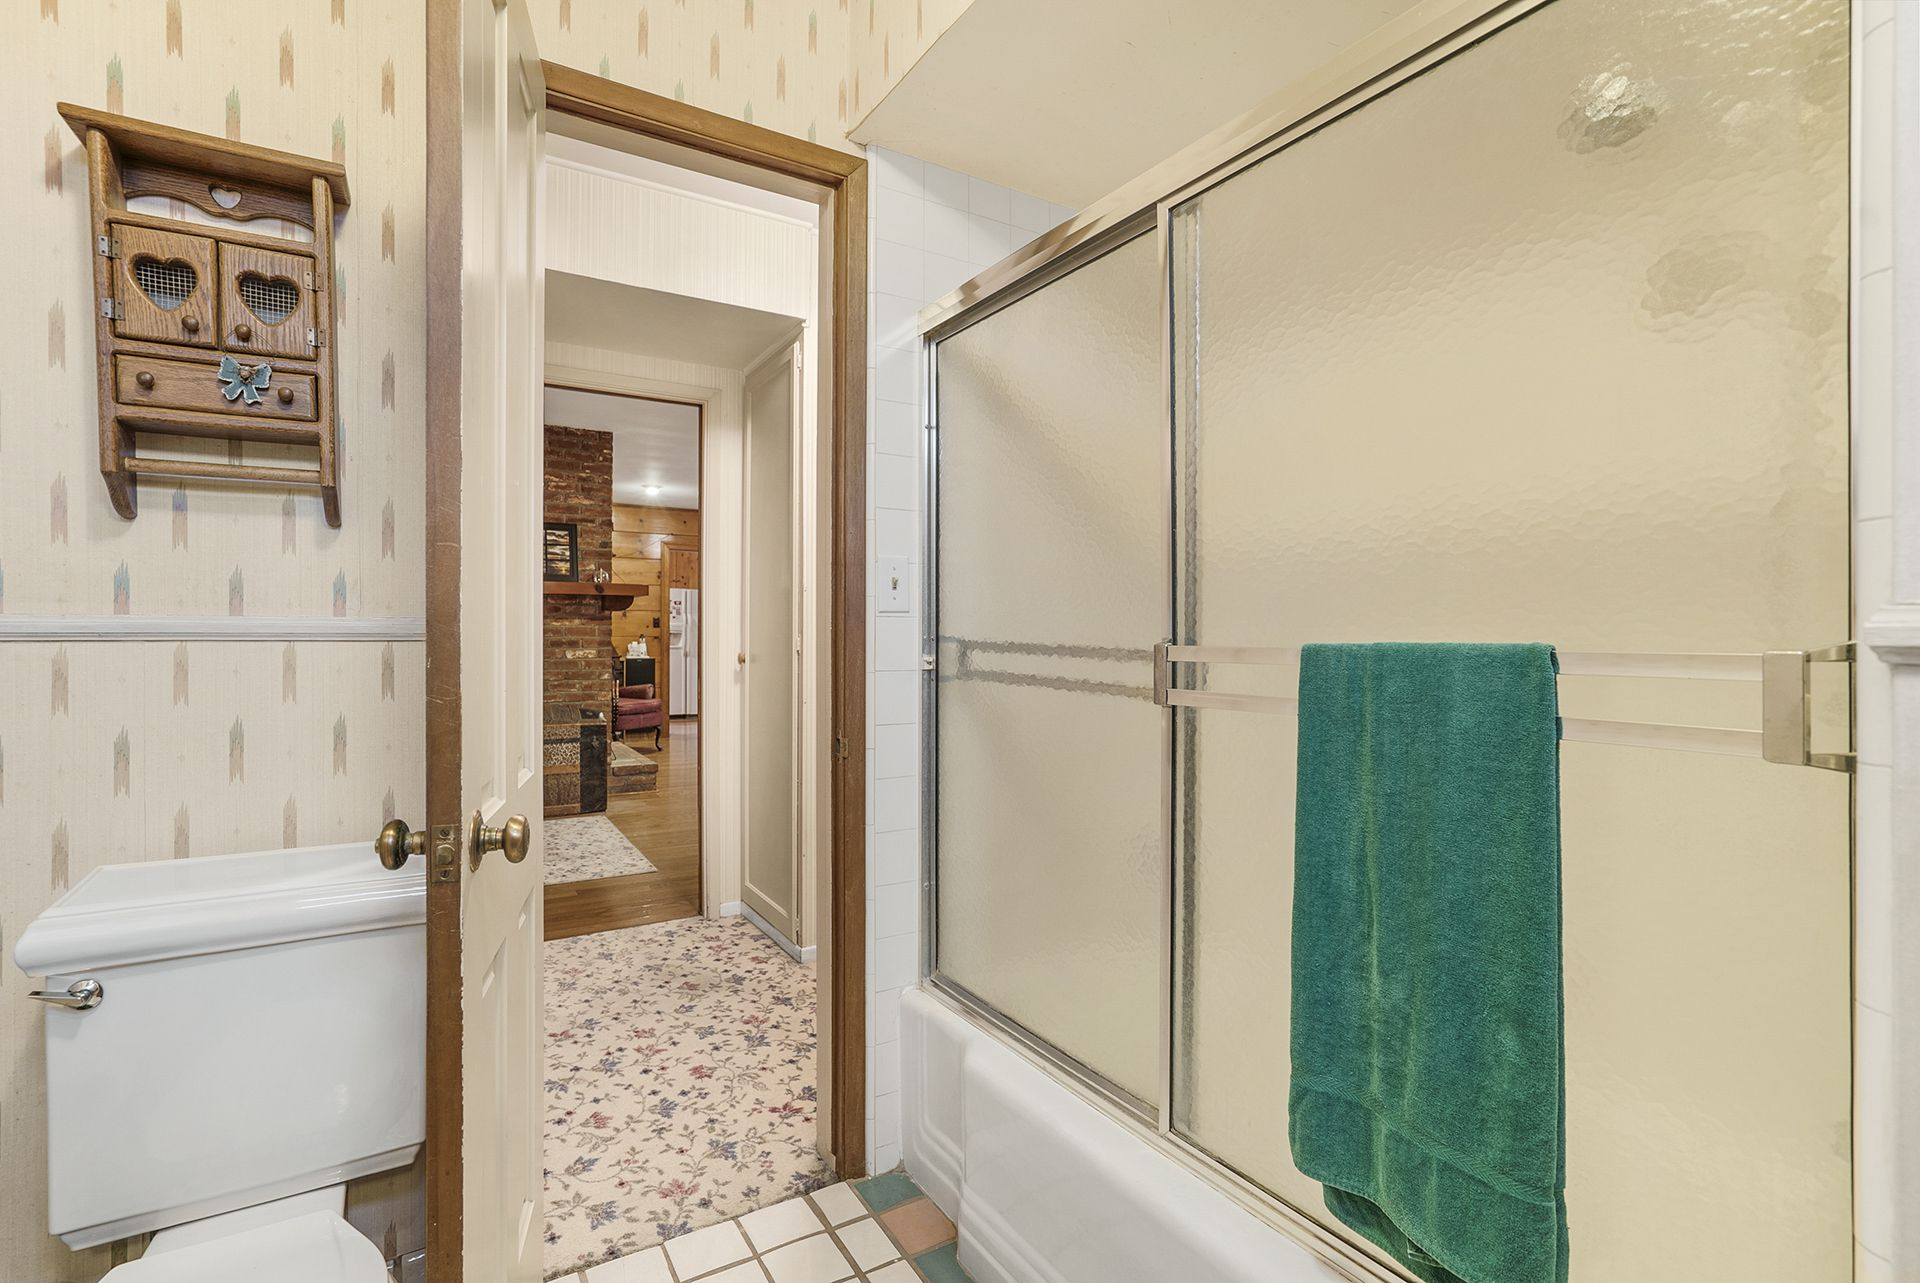 Alternate view of hallway bathroom with shower in tub.